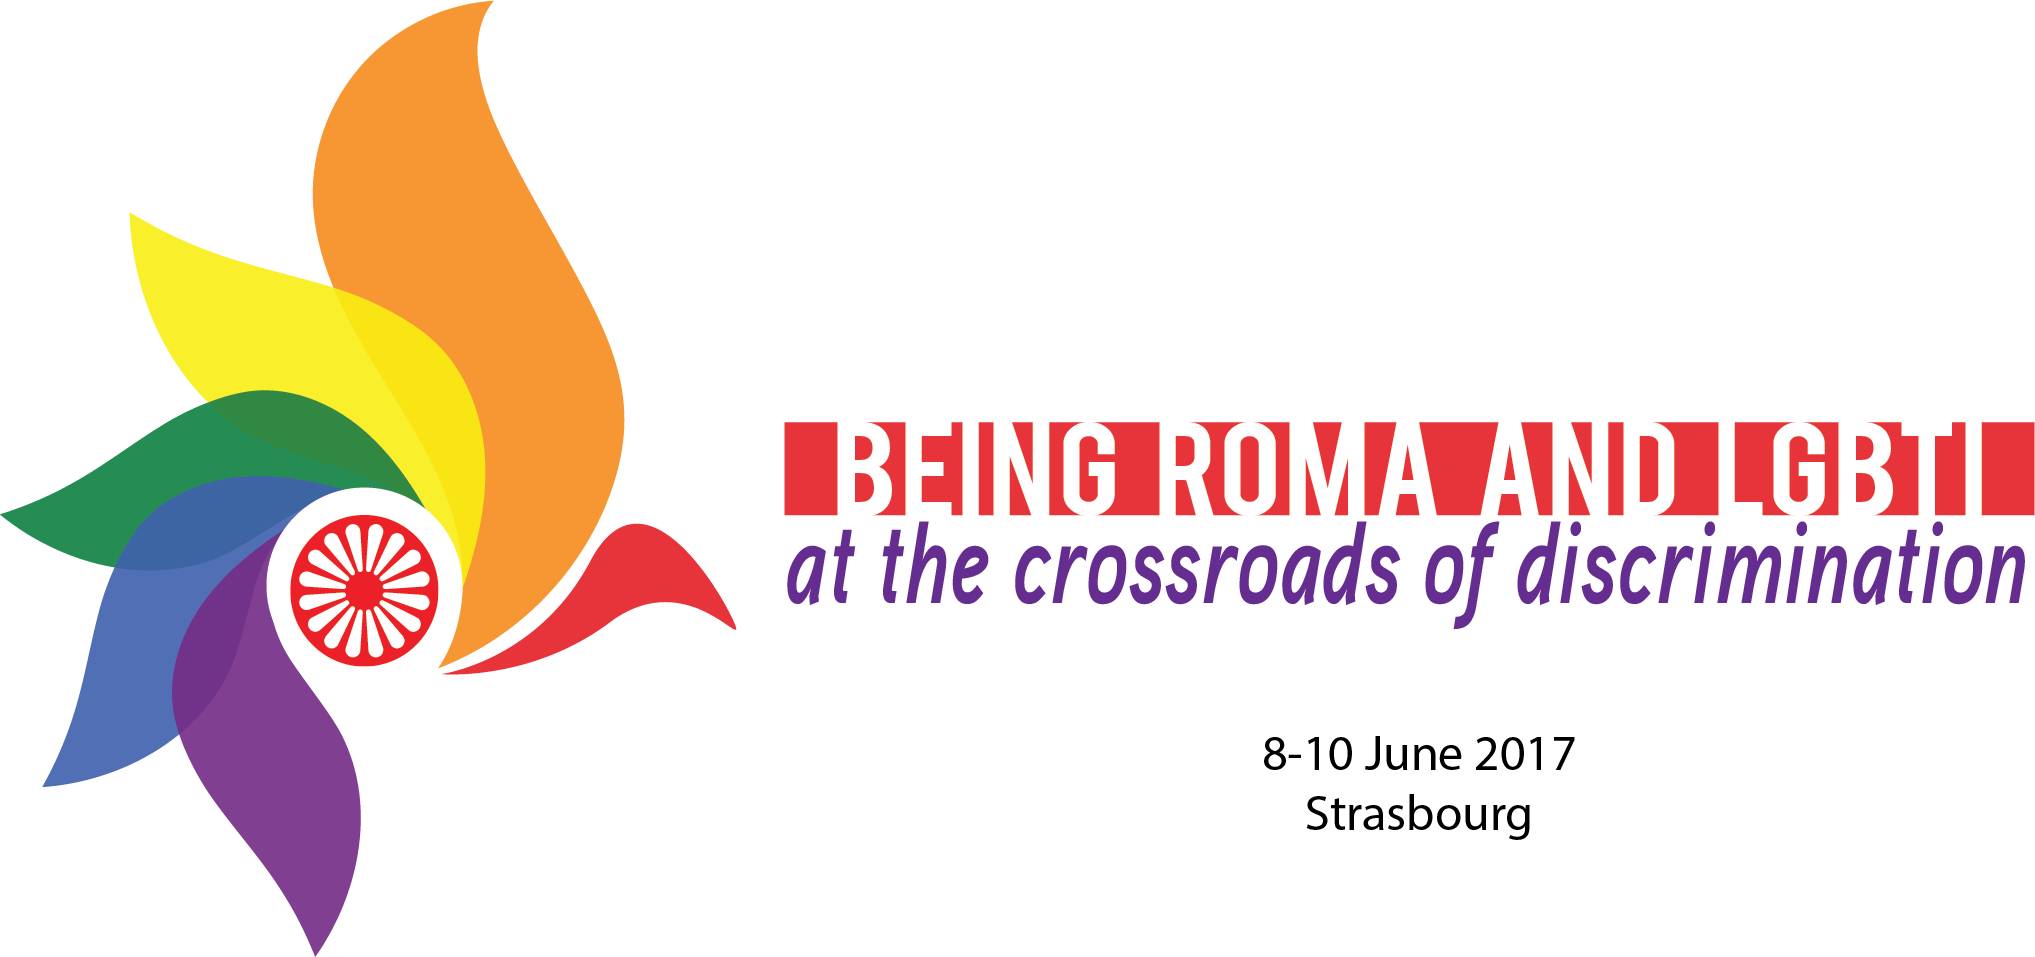 Apply Today: Being Roma and LGBTI: at the crossroads of discrimination